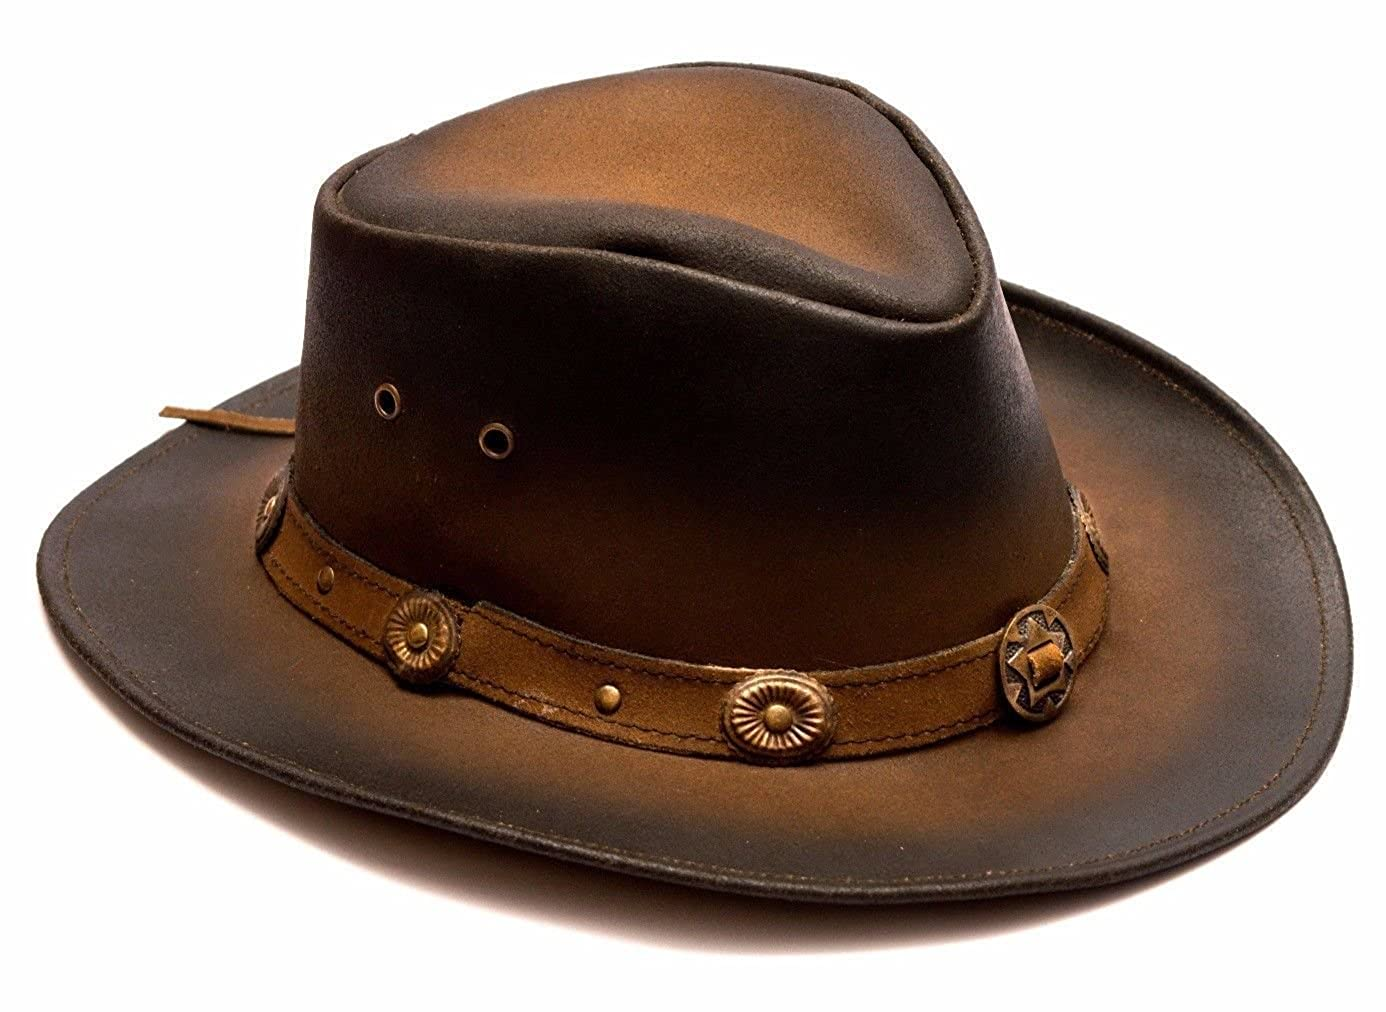 Australian Western Style Cowboy Leather Bush Hat